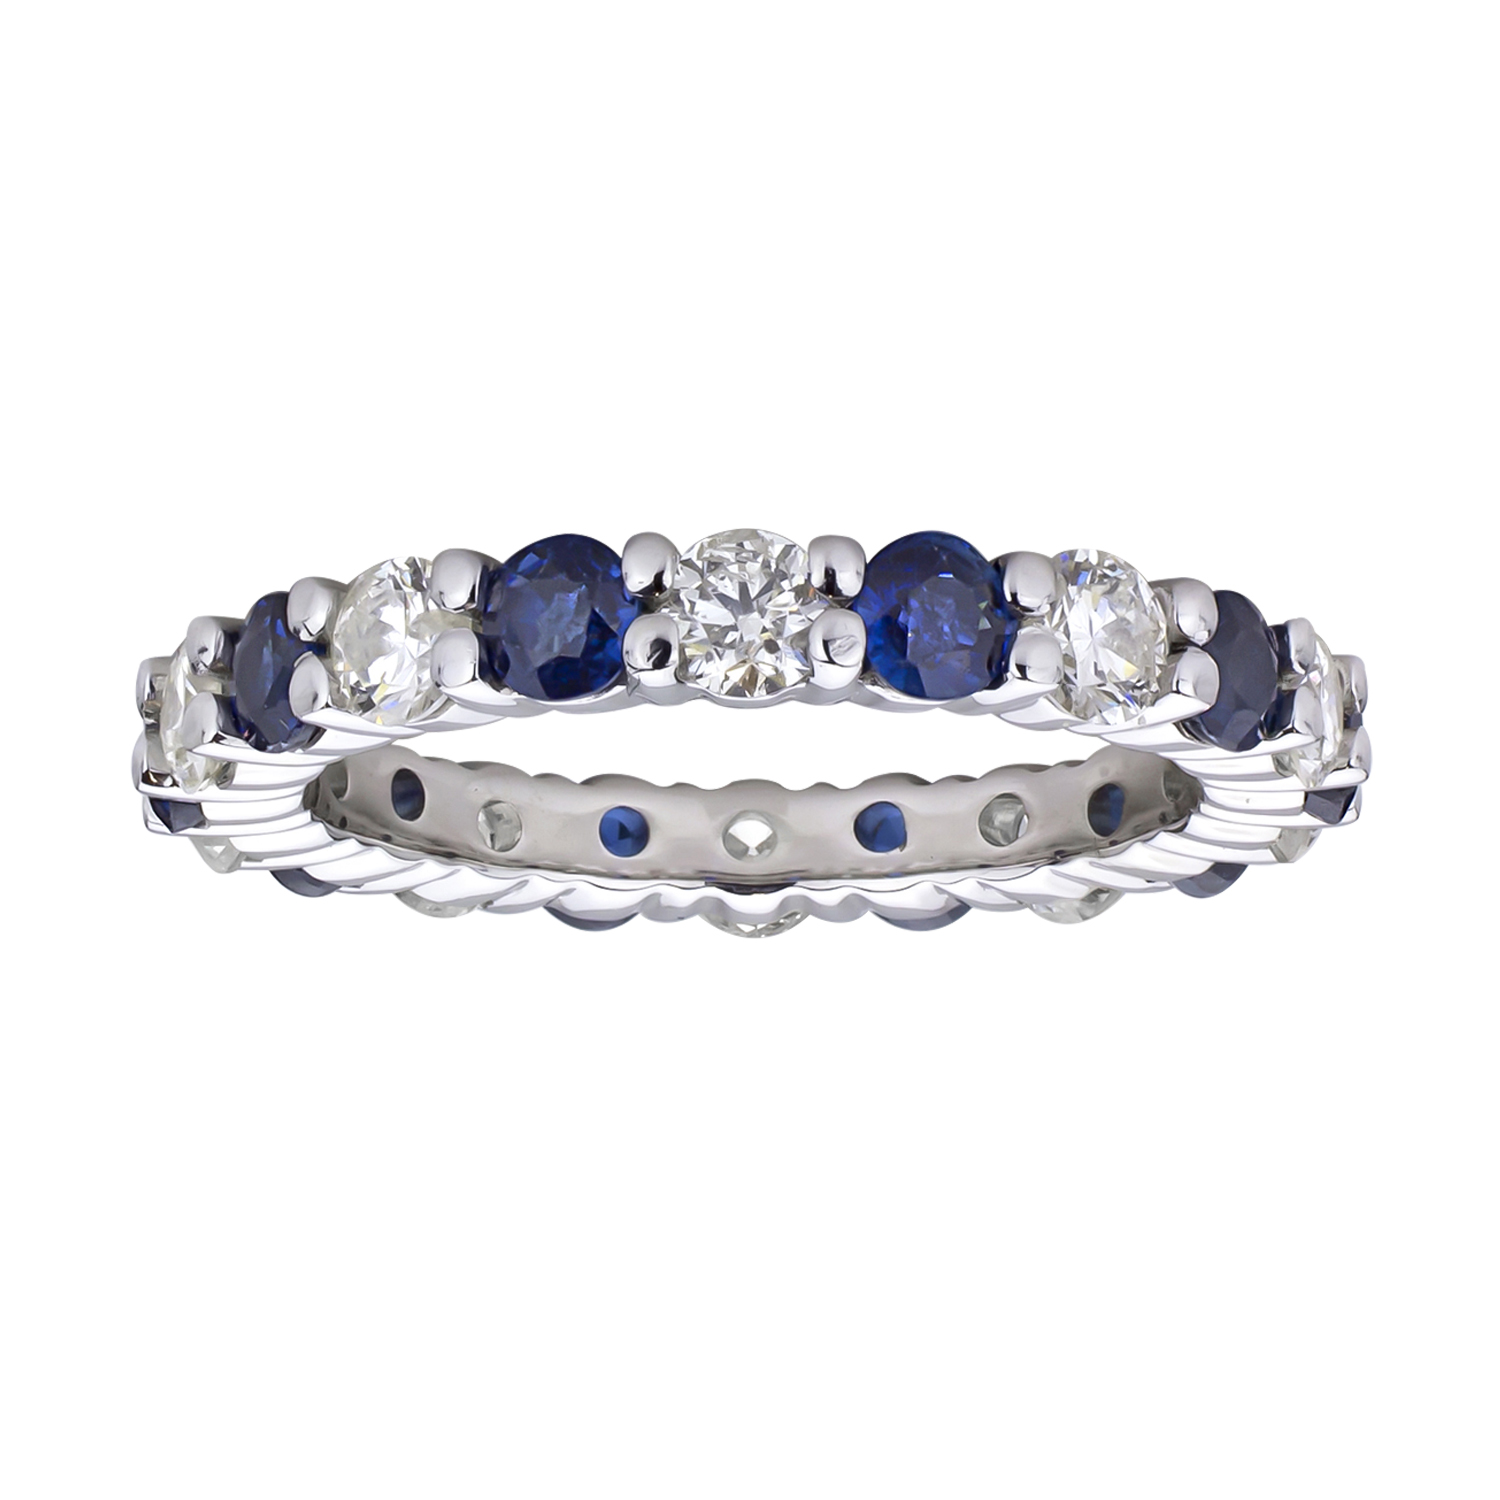 View 2.20cttw Diamond and Sapphire Eternity Band set in 14k Gold